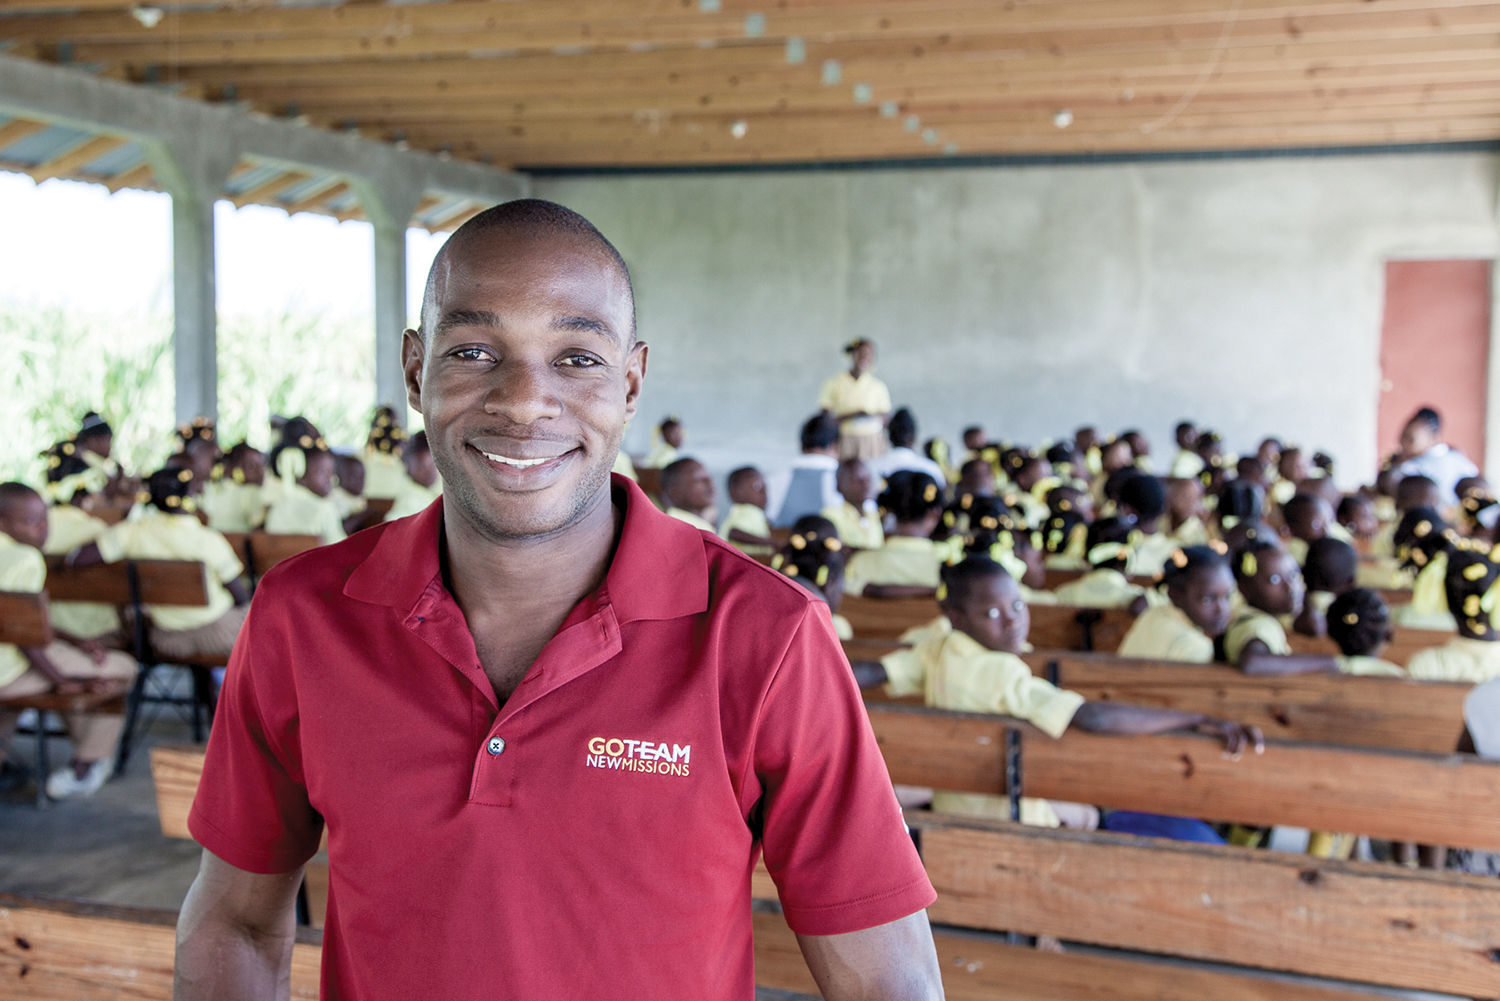 Yaguel Nerat, graduate from the class of 2005, is now the school director and pastor at New Missions Christian Academy in Neply, where he attended school.